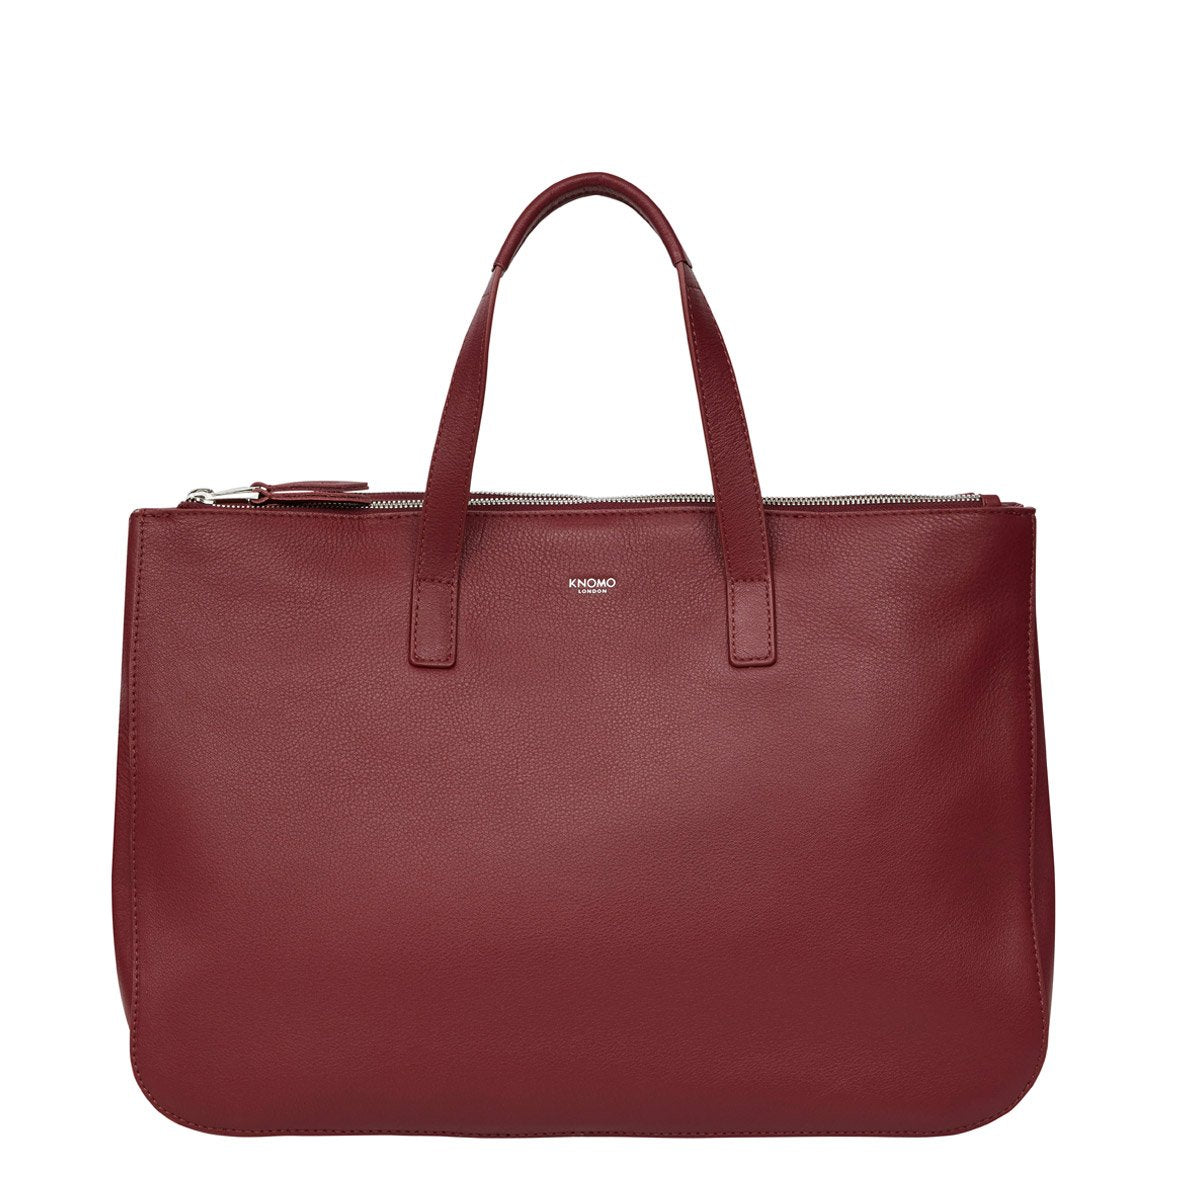 Mayfair luxe derby leather tote 14  120 206 bur front